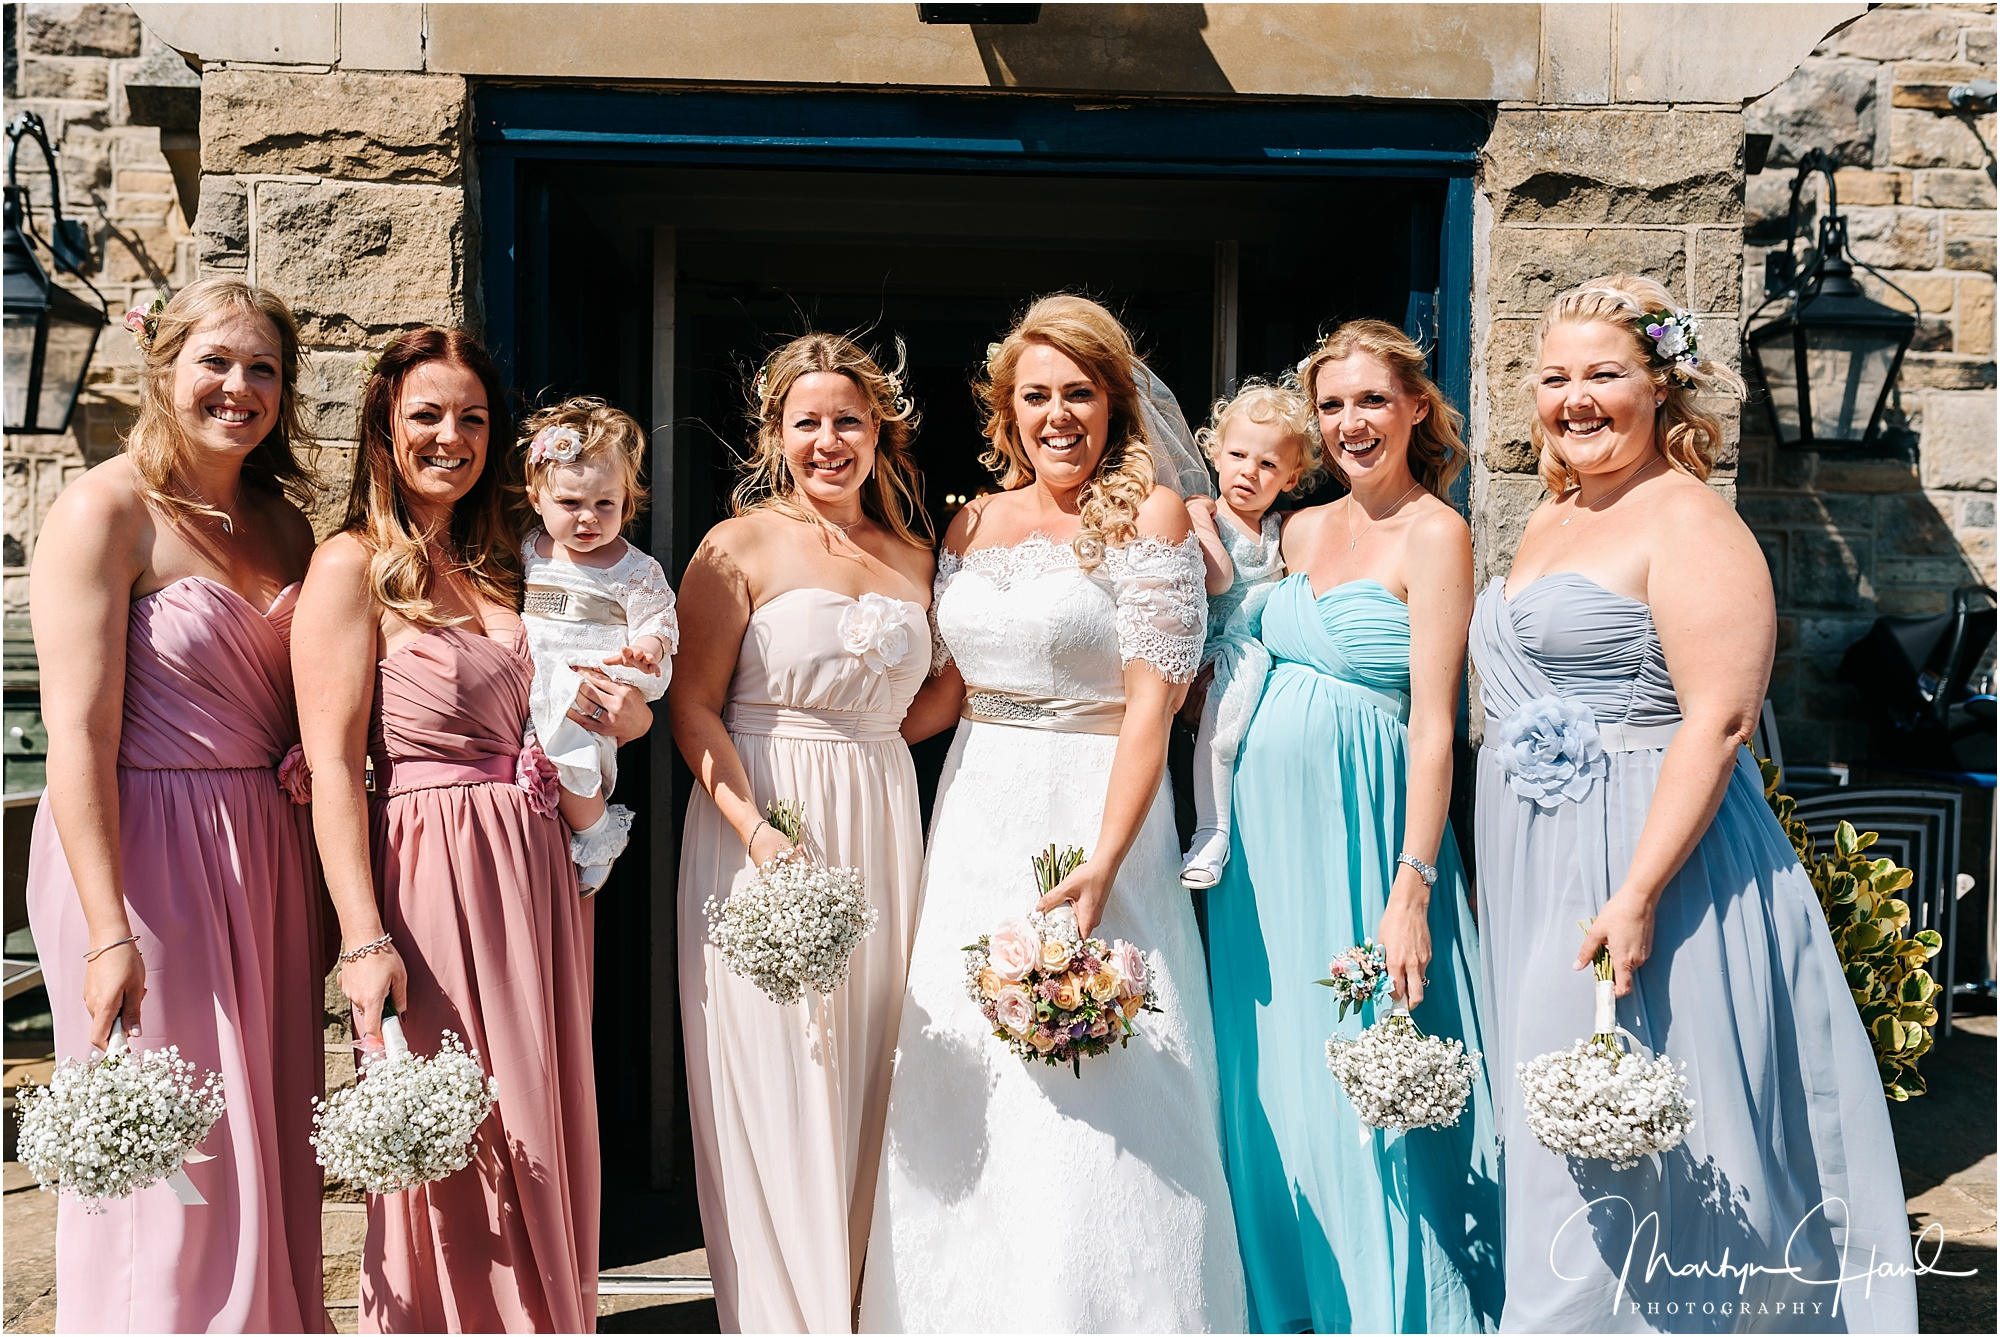 Laura & Mark Wedding Highlights-26.jpg